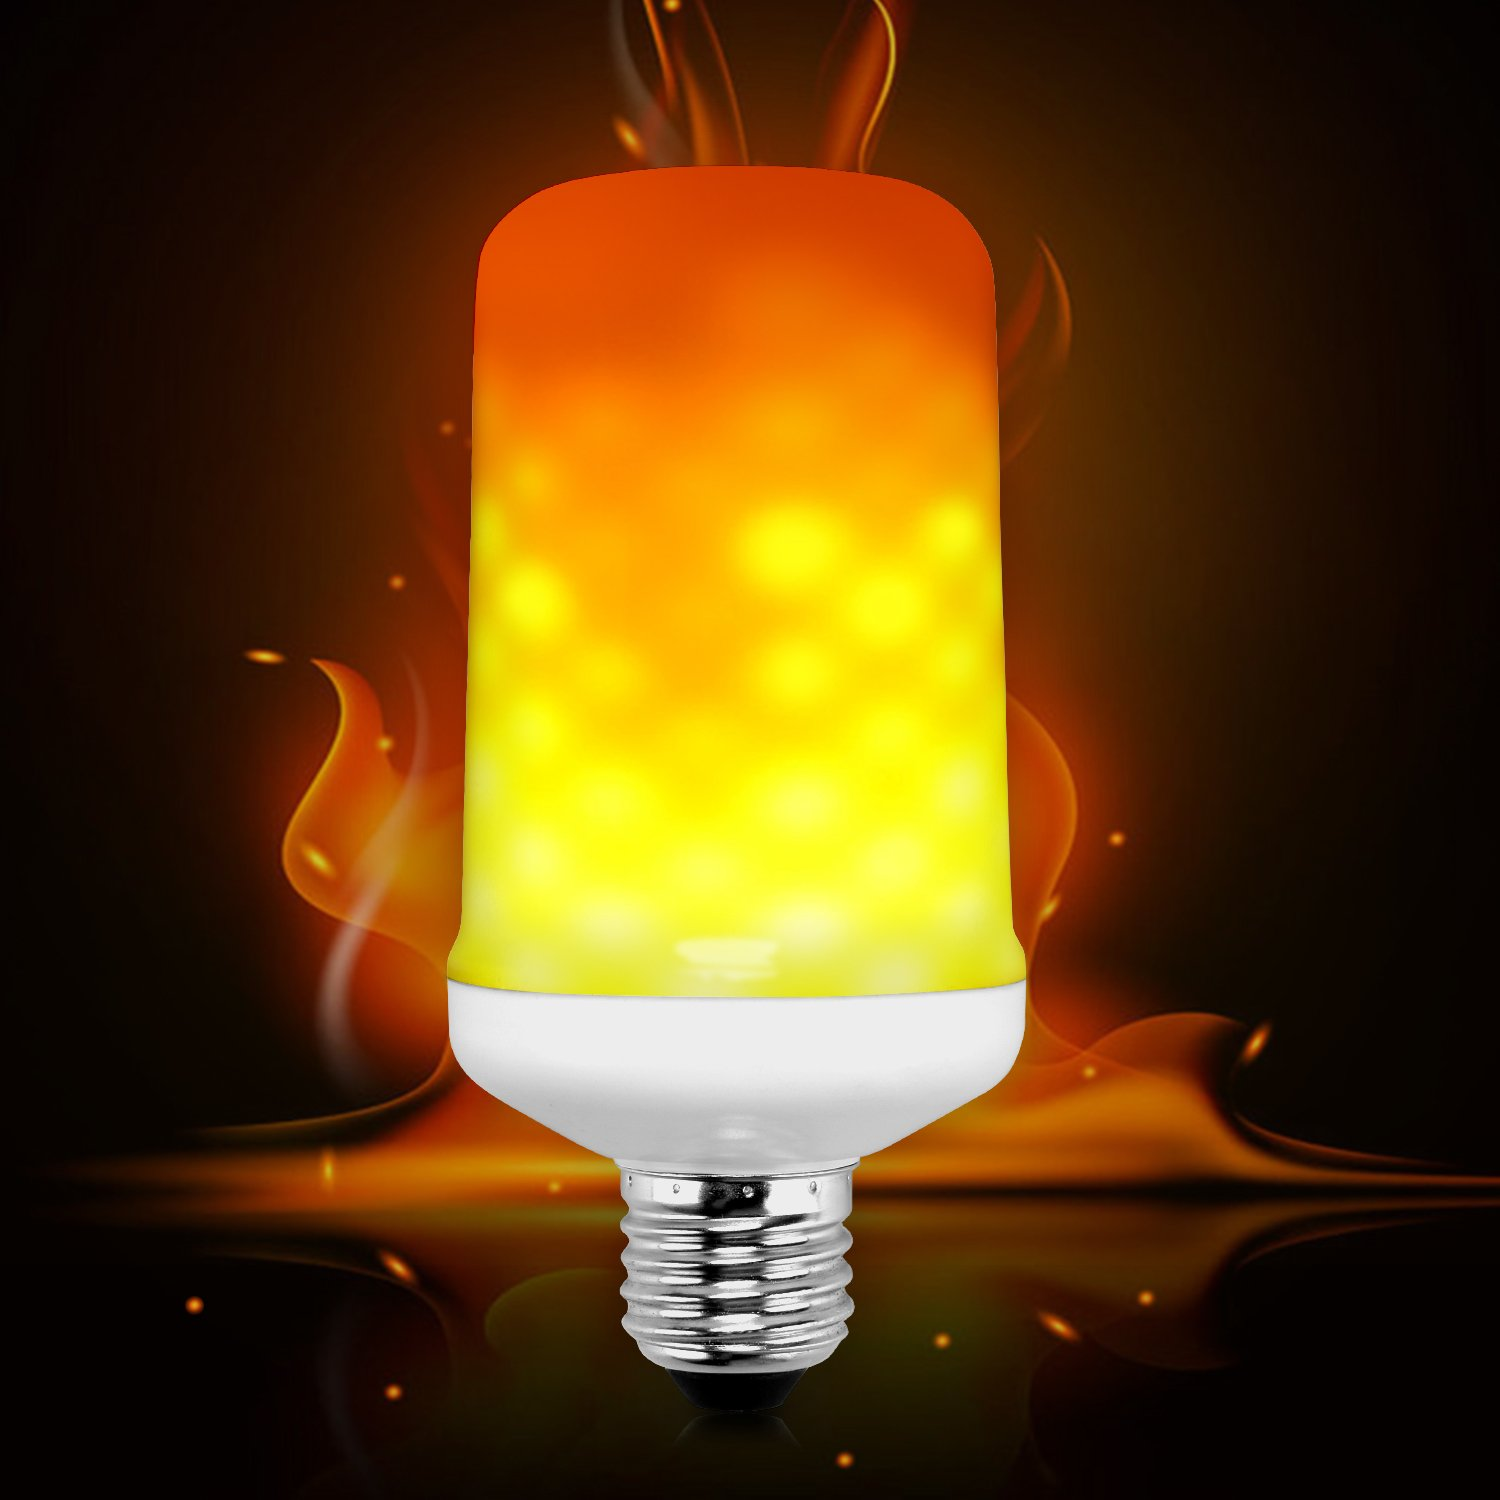 Flame Bulb Smarlance E26 LED Flame Effect Fire Light Bulb 2 Modes  amps,Simulated Nature